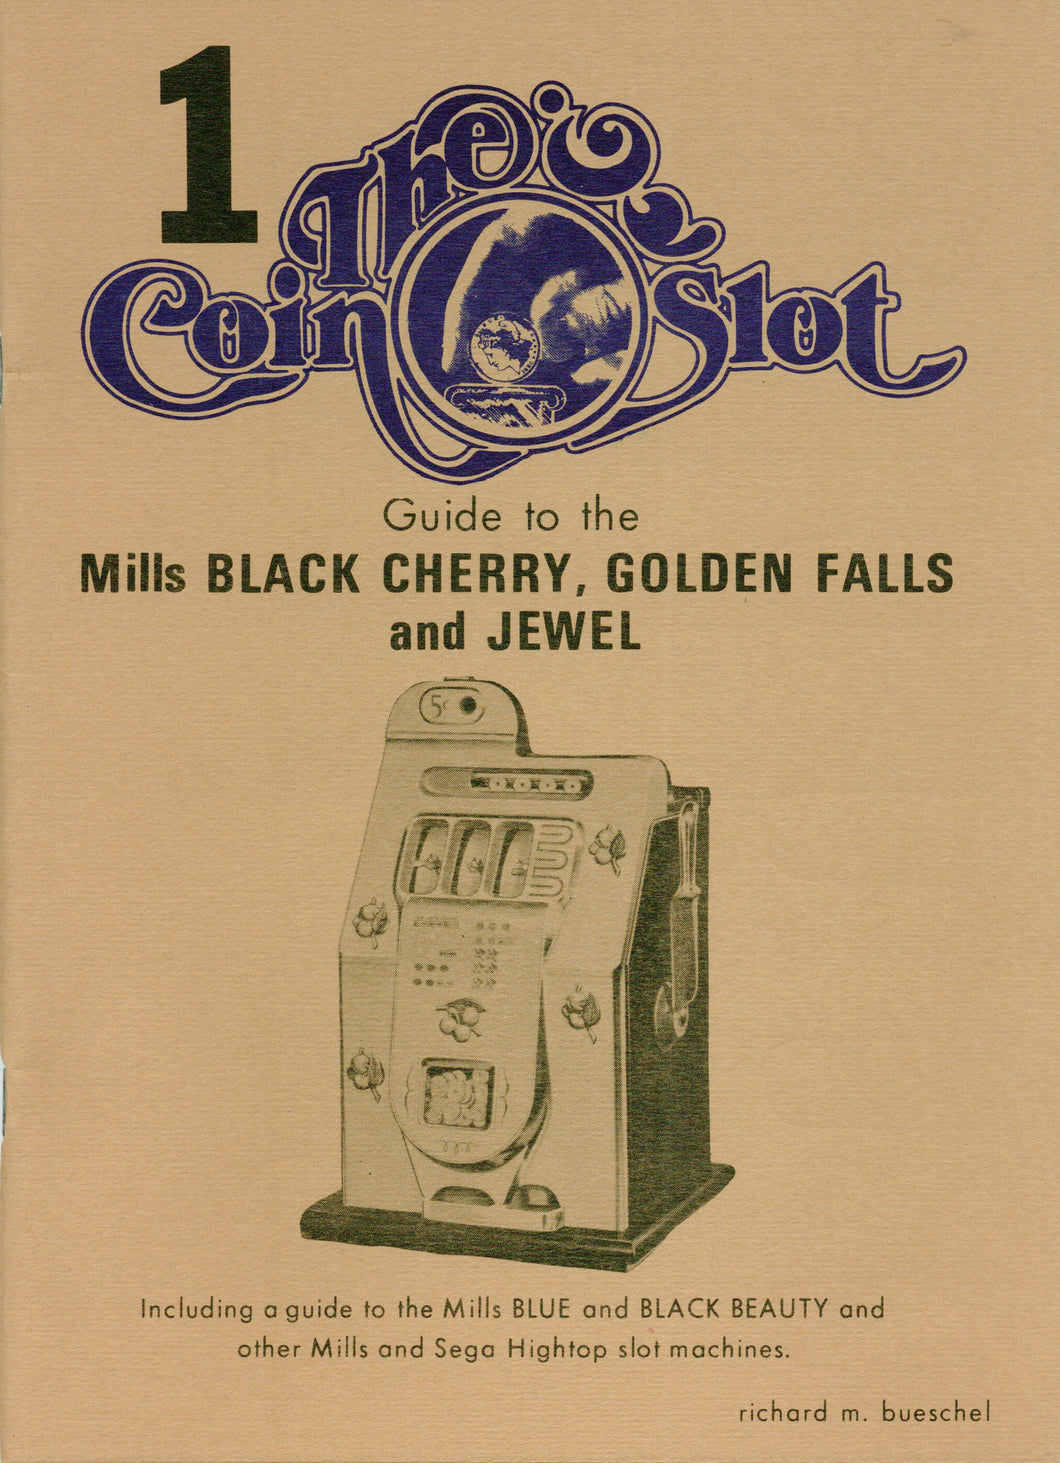 Coin Slot # 1. Guide to the Mills Black Cherry, Golden Falls and Jewel (OOP)